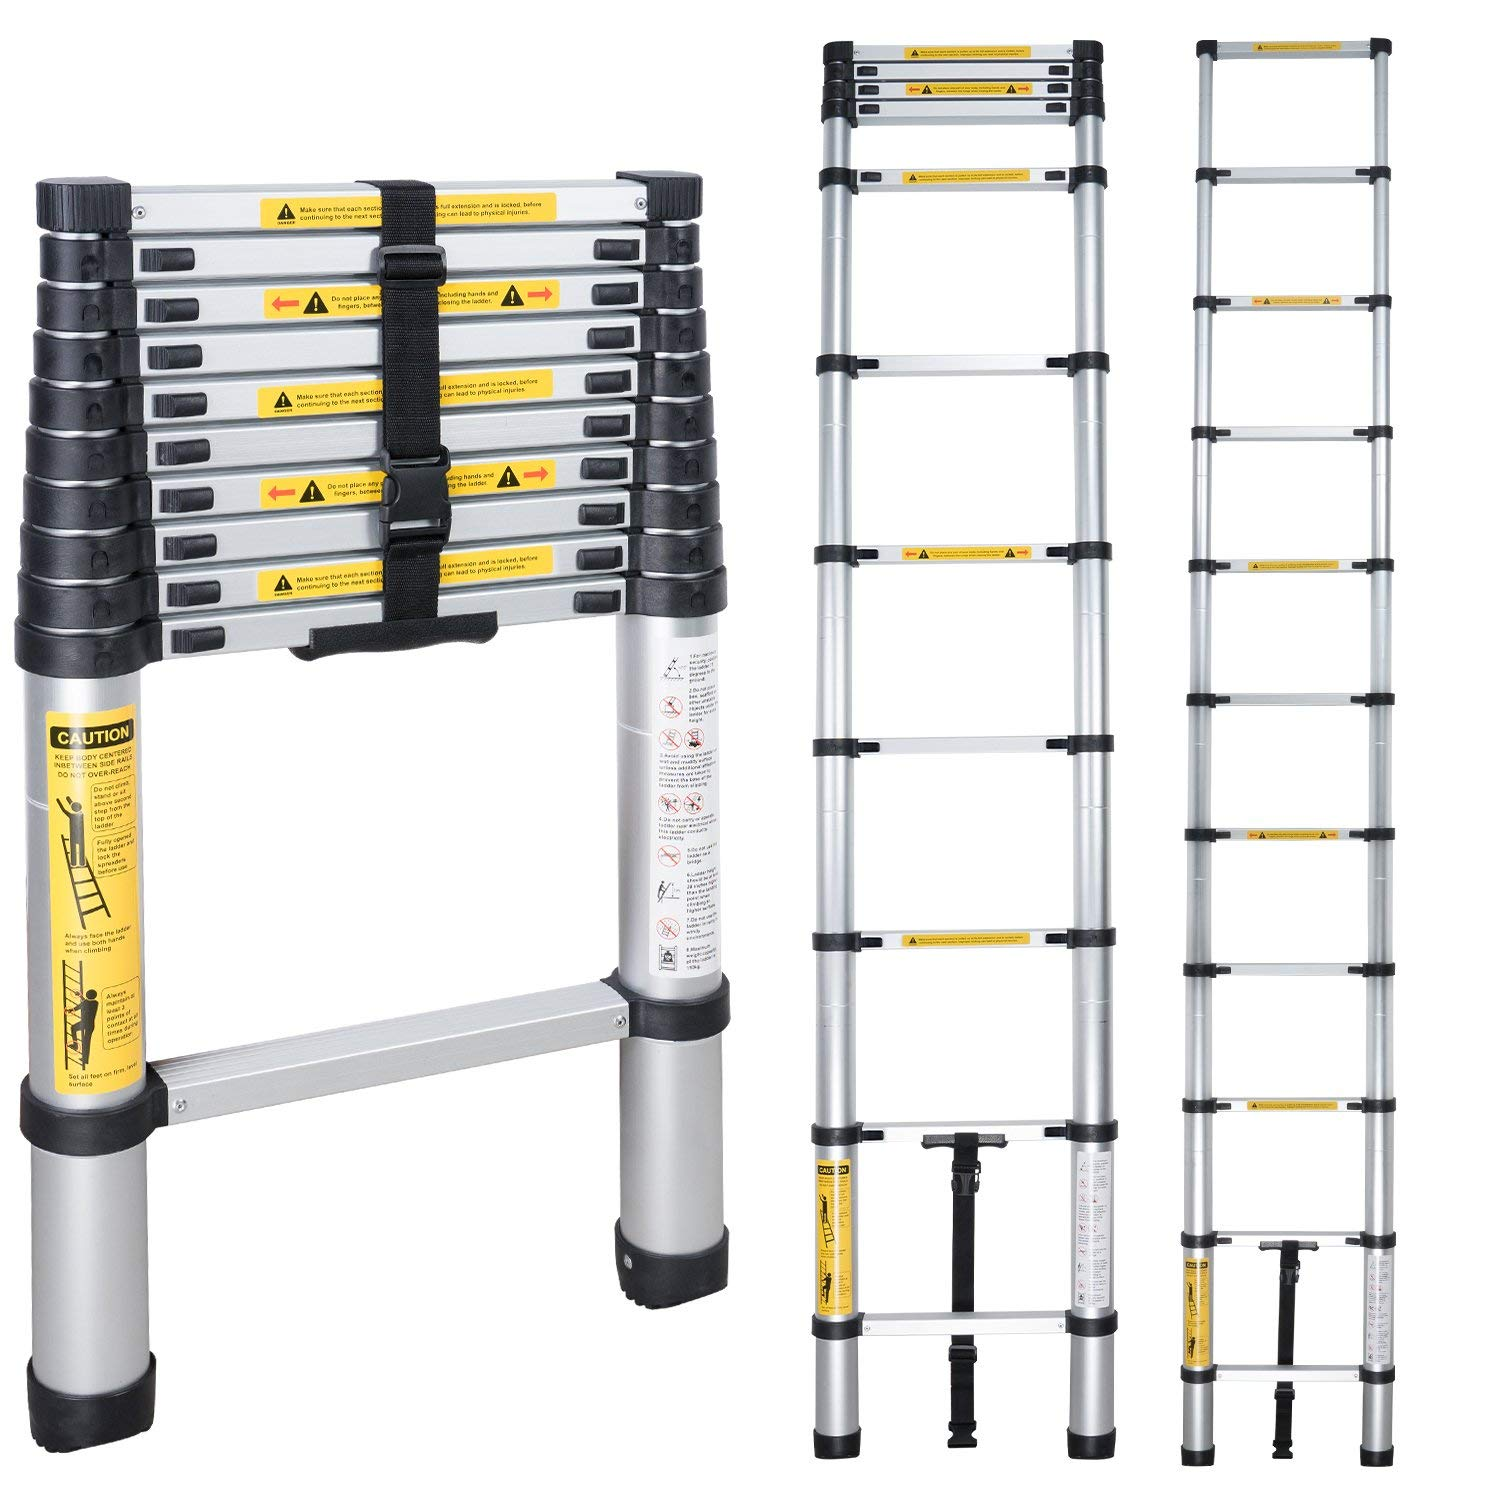 EN131 8.53ft (2.6m) Telescoping Ladder Folding Ladders Aluminum Multi Purpose Household Thickening Extension Ladder